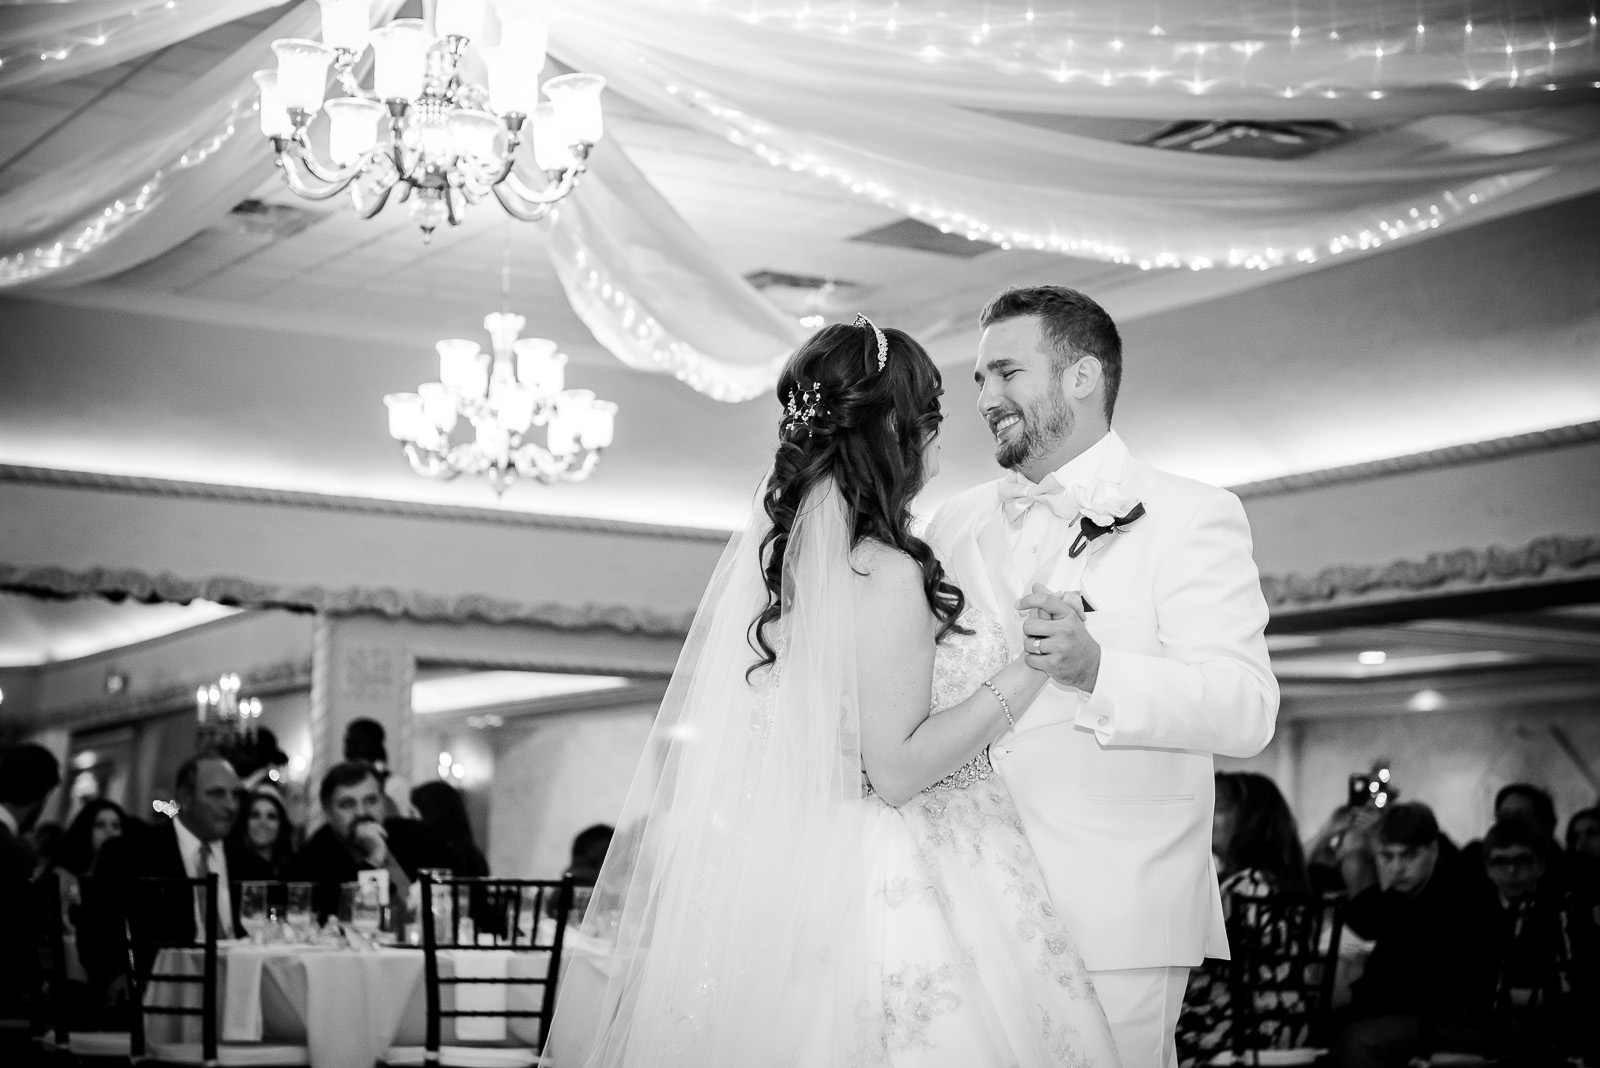 Eric_and_Christy_Photography_Blog_Wedding_Eva_Andrew-51